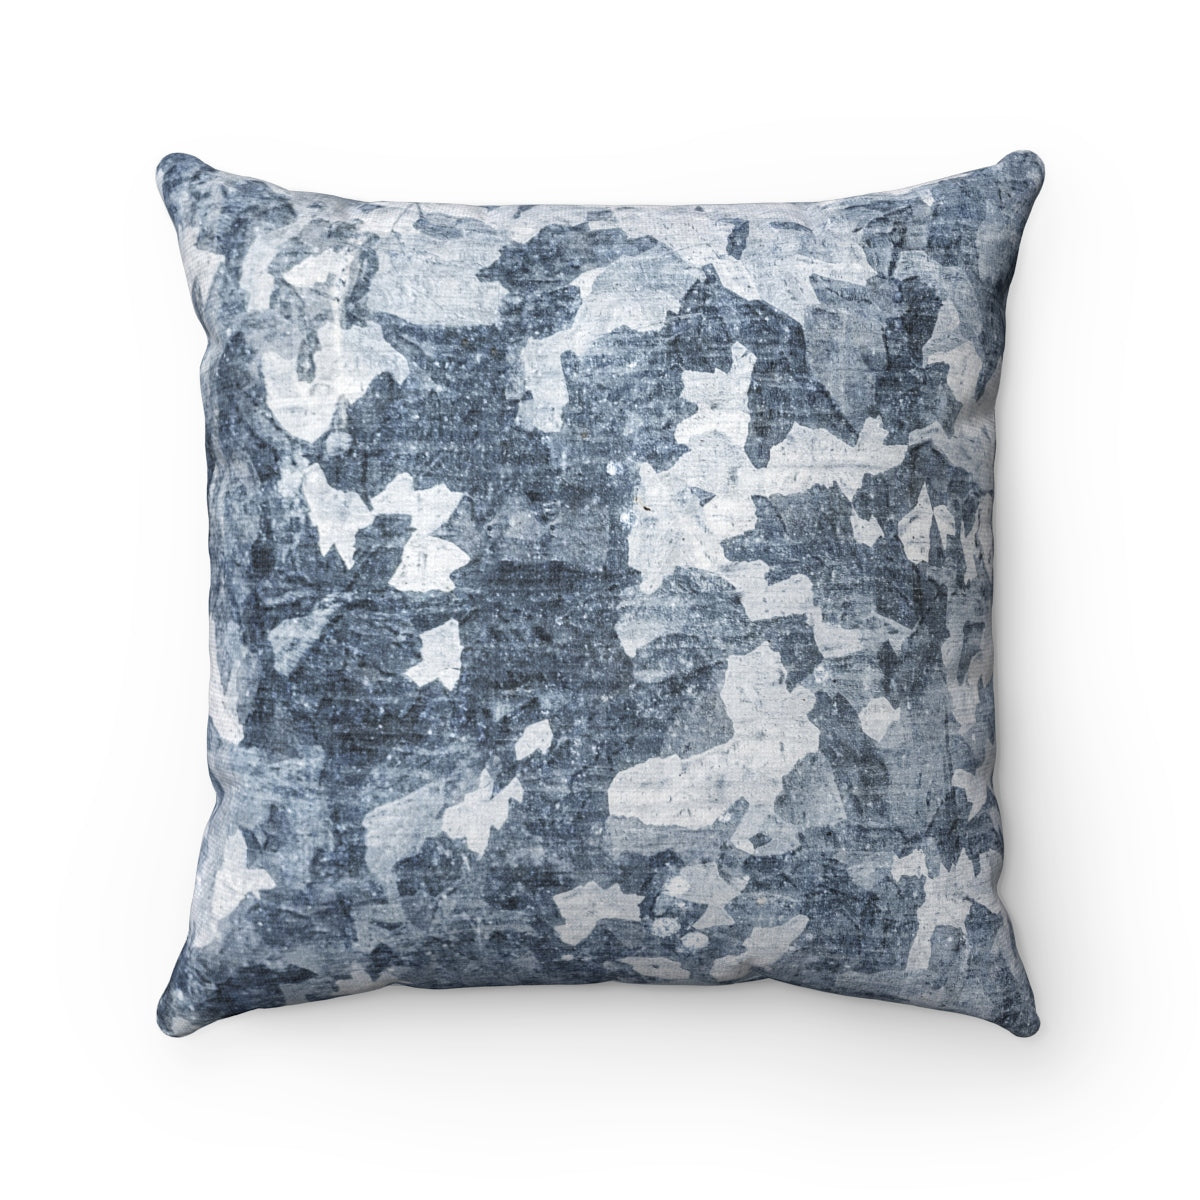 Luxury Decorative Throw Pillow